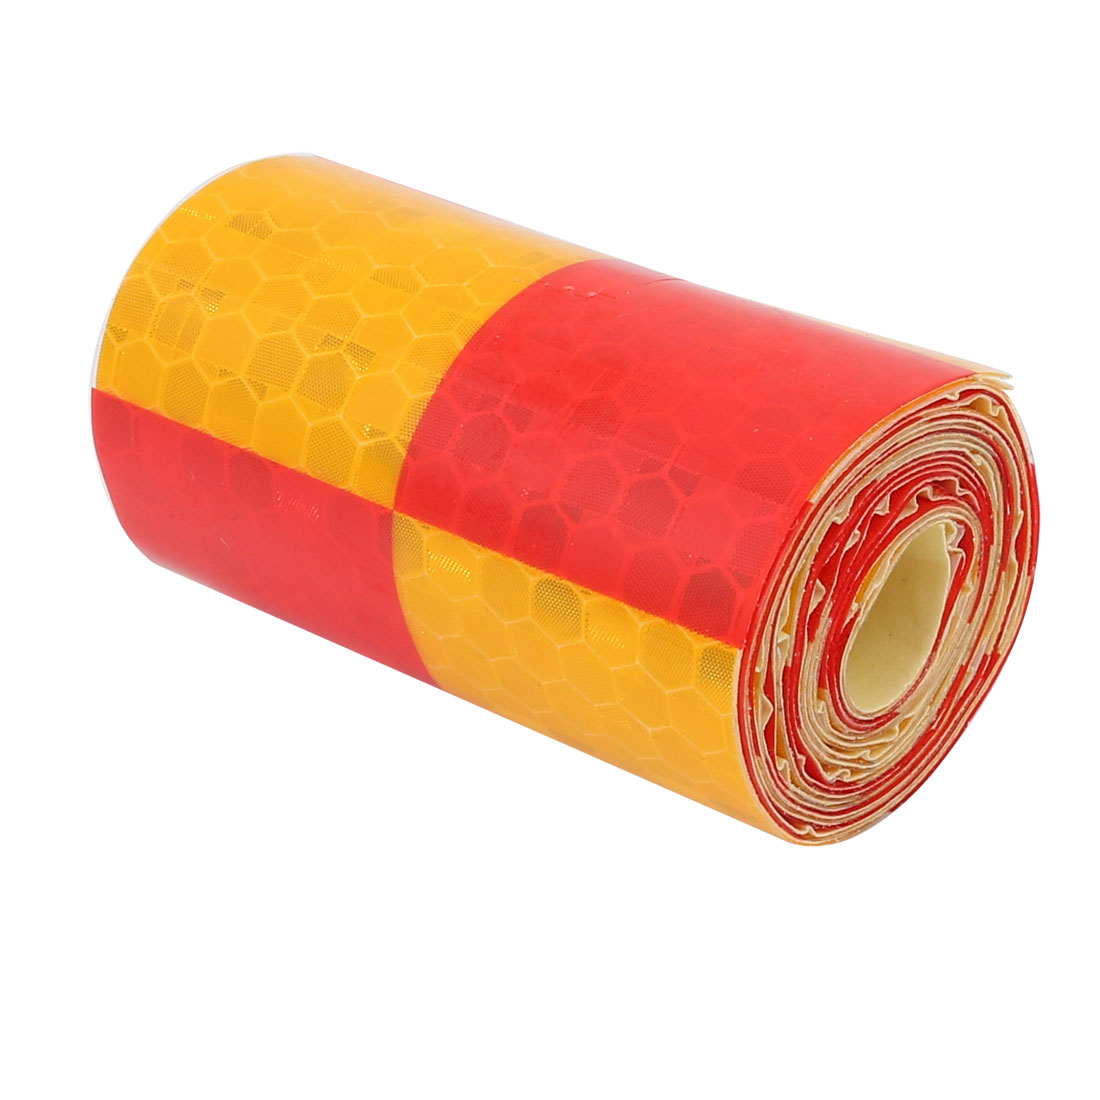 5cm Wide 1 Meter Length Honeycomb Adhesive Reflective Warning Tape Red Yellow